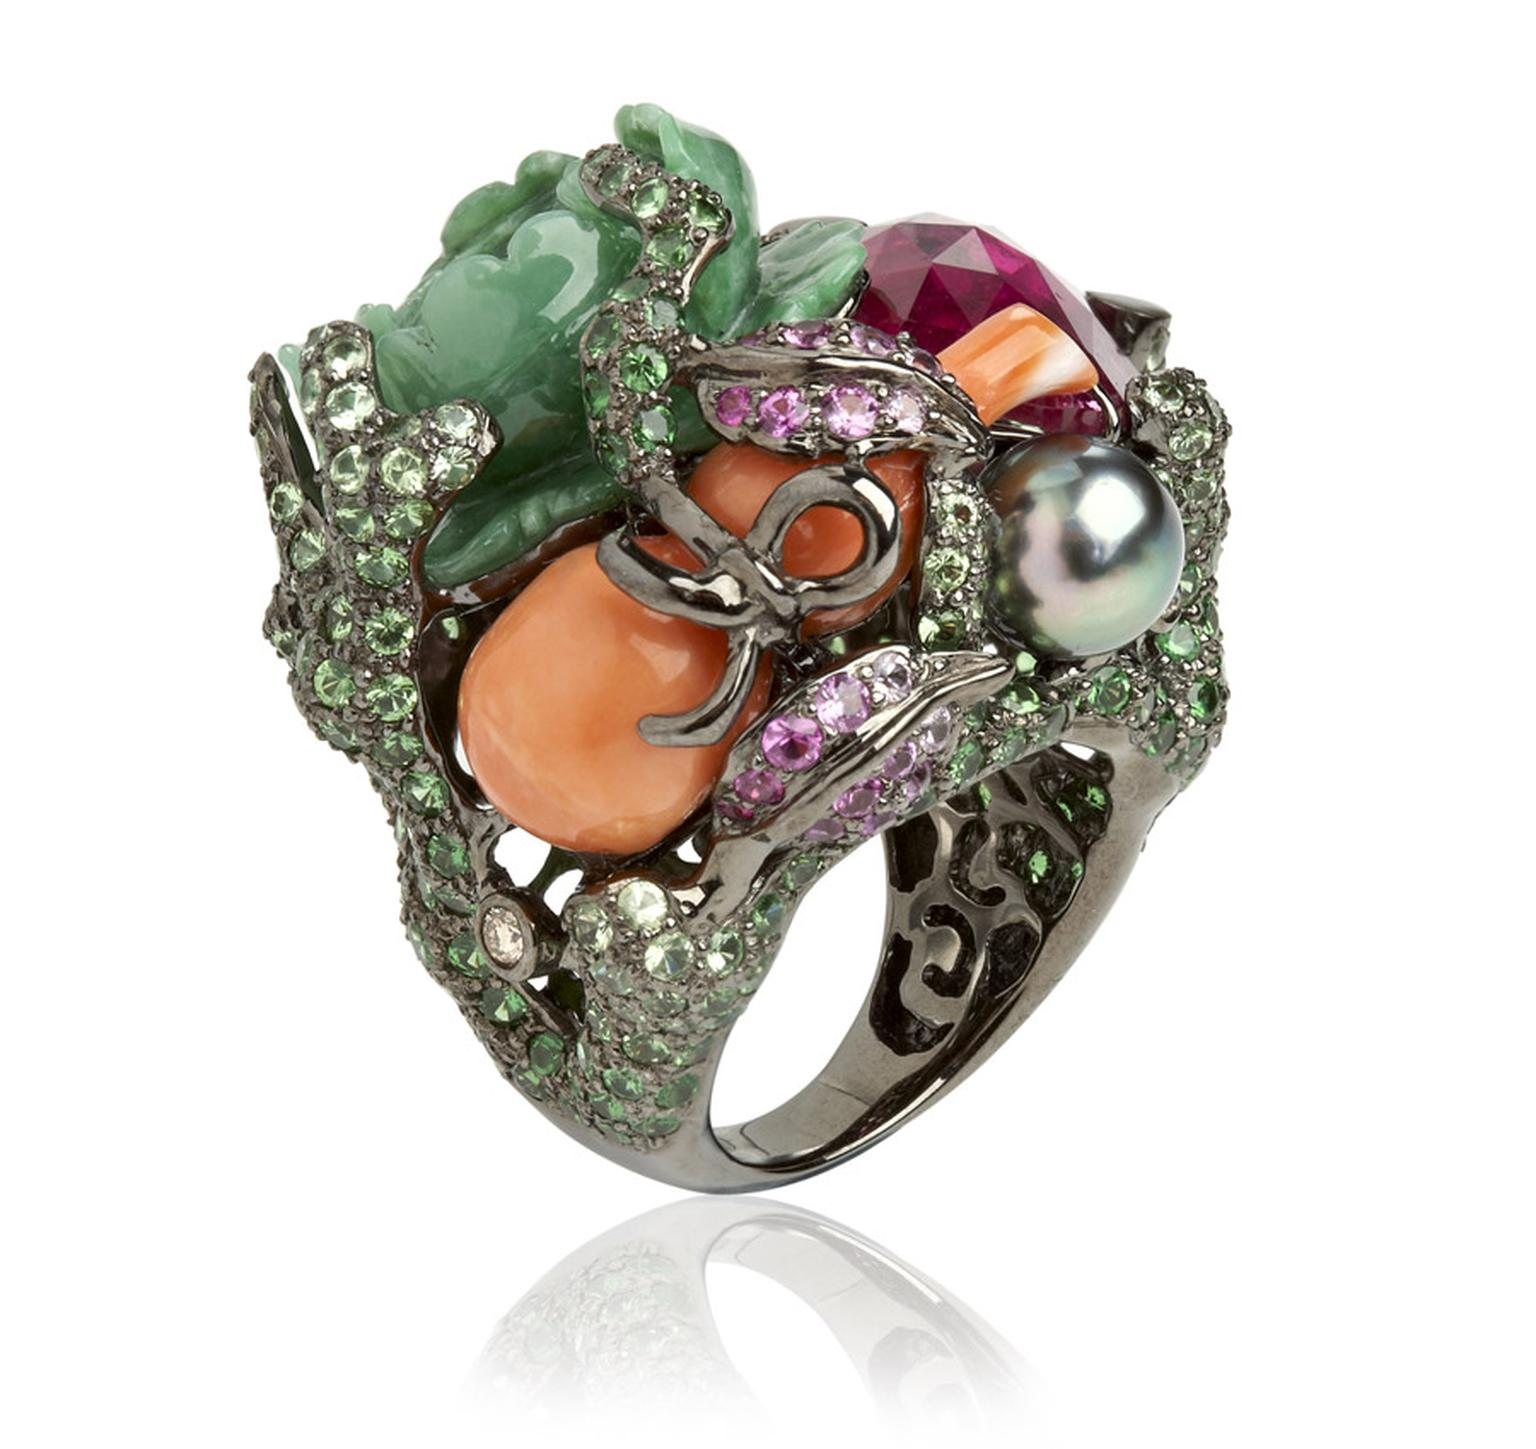 Wendy-Yue-Fantasie-18ct-white-gold,--diamond,-garnet,-sapphire,-pearl,-coral-and-jade-Jugle-Jumble-ring-By-Wendy--Yue-for-Annoushka-.jpg